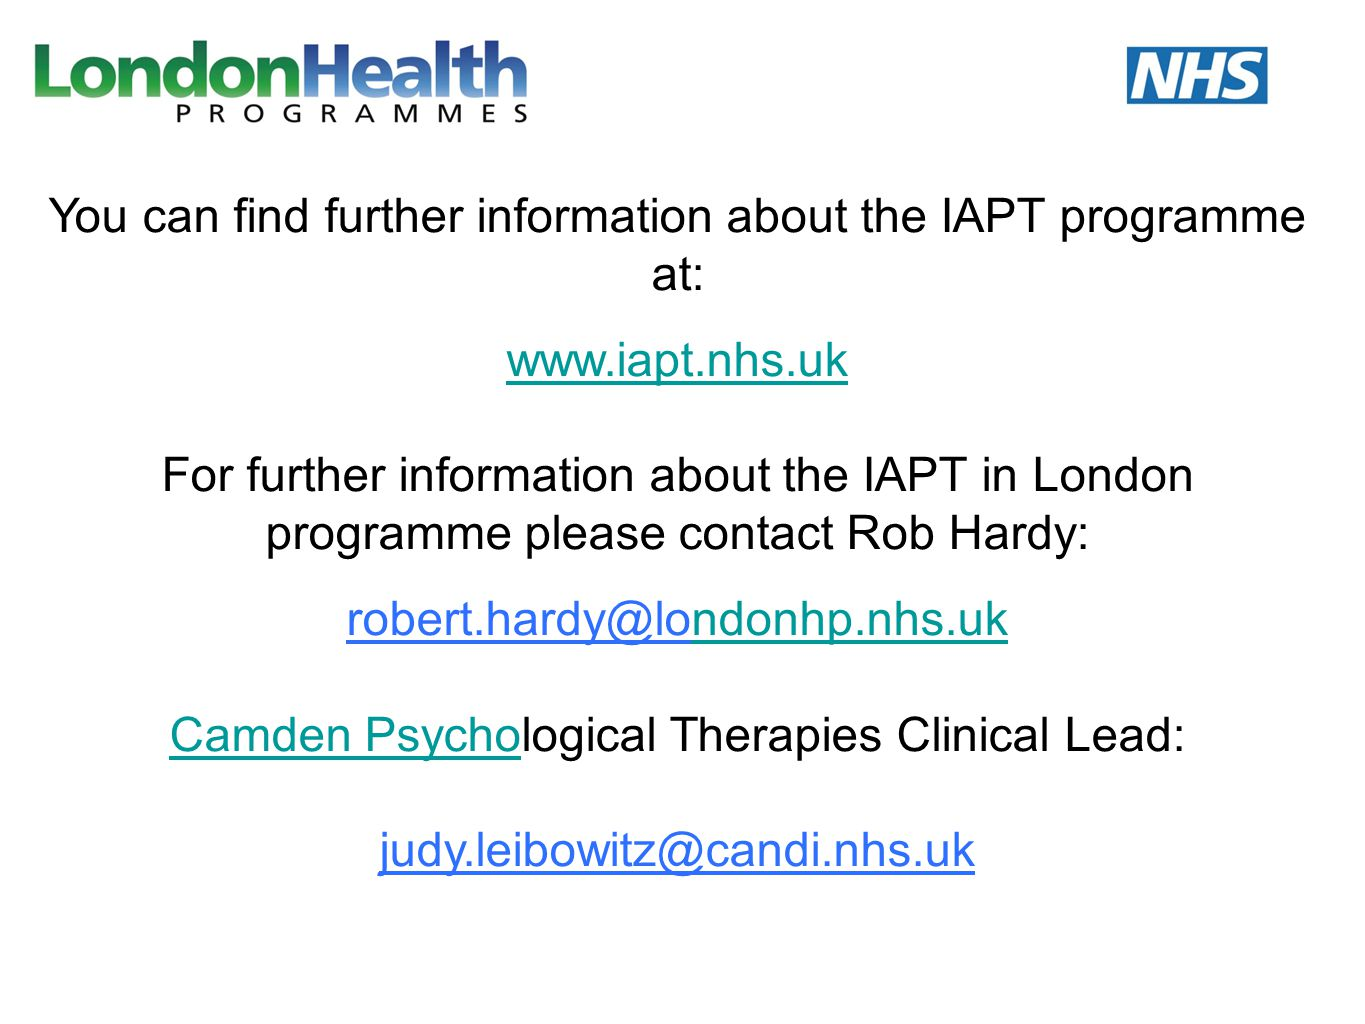 You can find further information about the IAPT programme at: